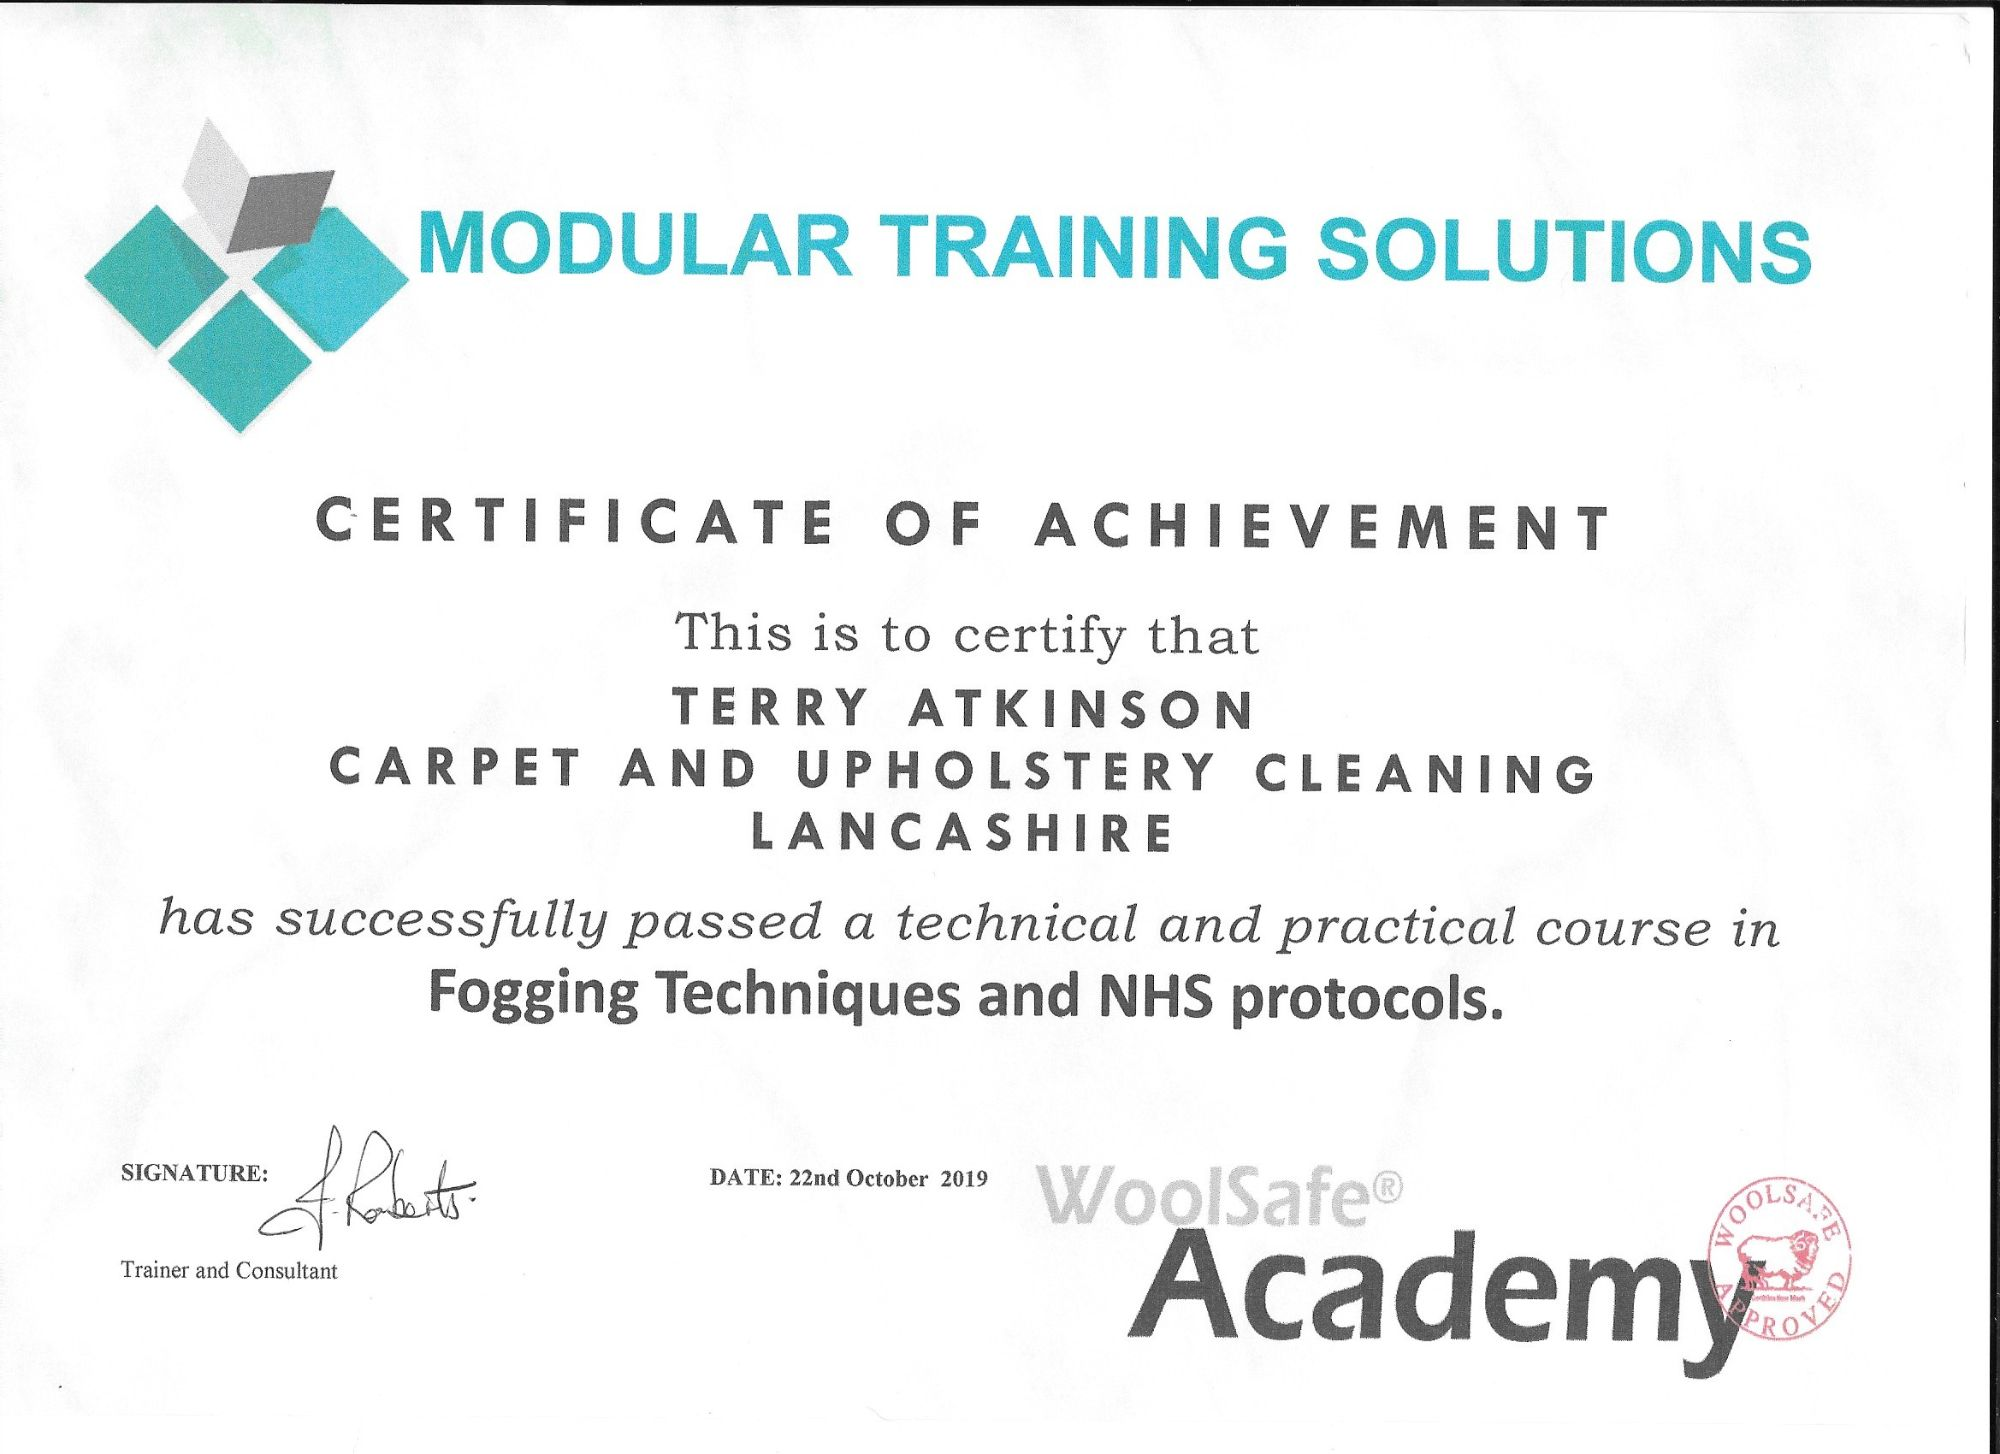 Fogging & NHS certification certificate Carpet & Upholstery Cleaning Lancashire